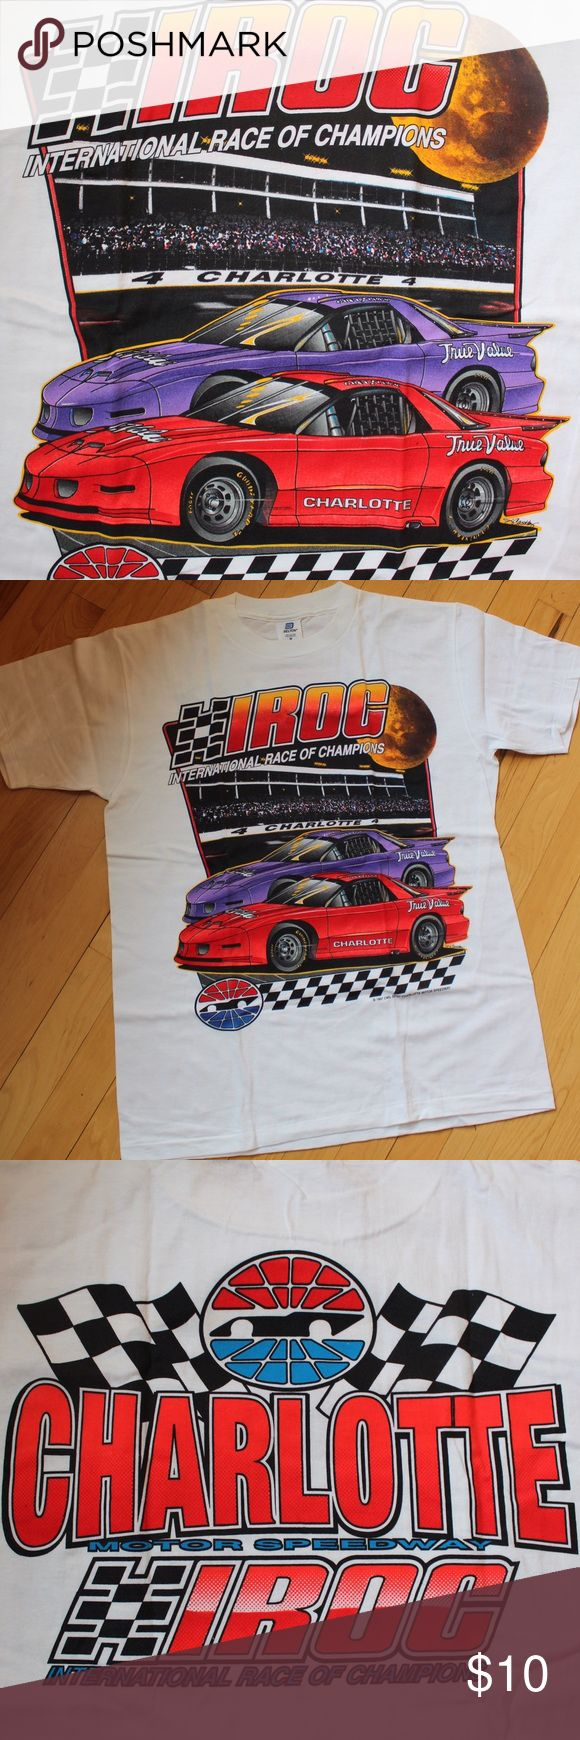 ✅NEW NASCAR Racing Race IROC tshirt Charlotte NEW in original package. Never worn. Vintage racing NASCAR tshirt from Charlotte Motor Speedway.  IROC series.  2-sided design on front & back.  100% preshrunk cotton. Belton Shirts Tees - Short Sleeve